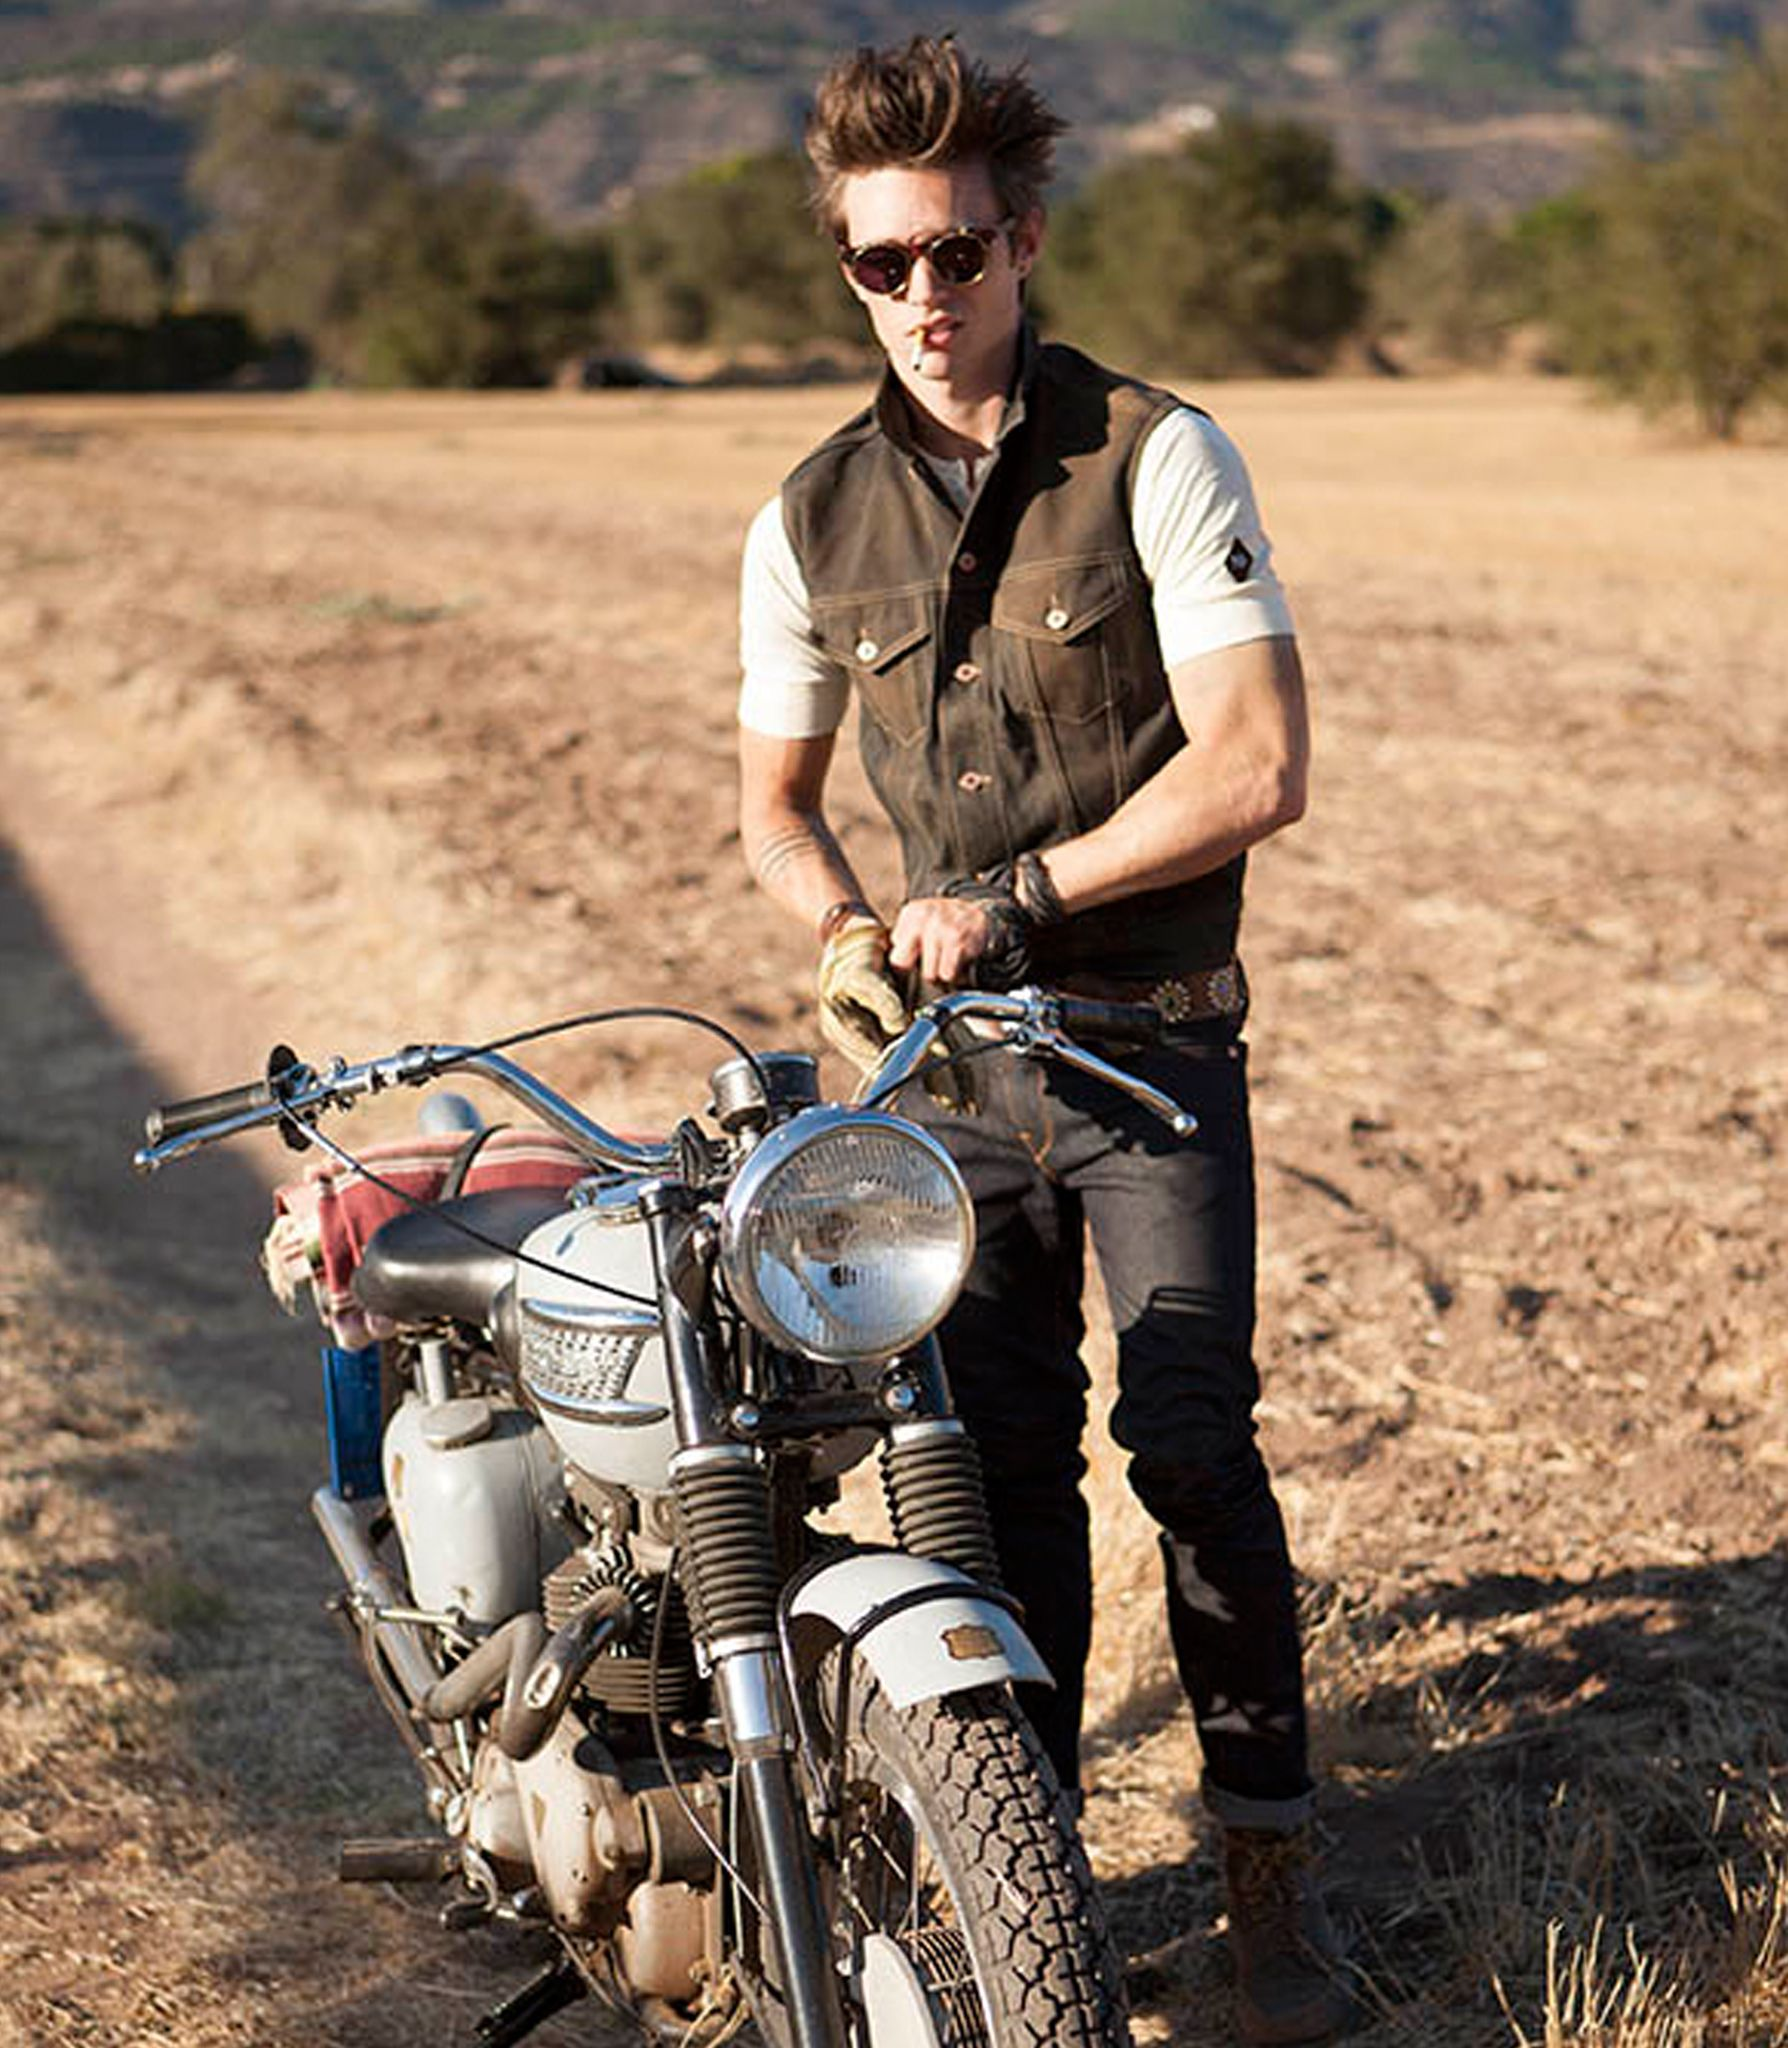 Ojai california denim workwear selvedge jeans wax canvas leather jackets motorcycle moto gear cone